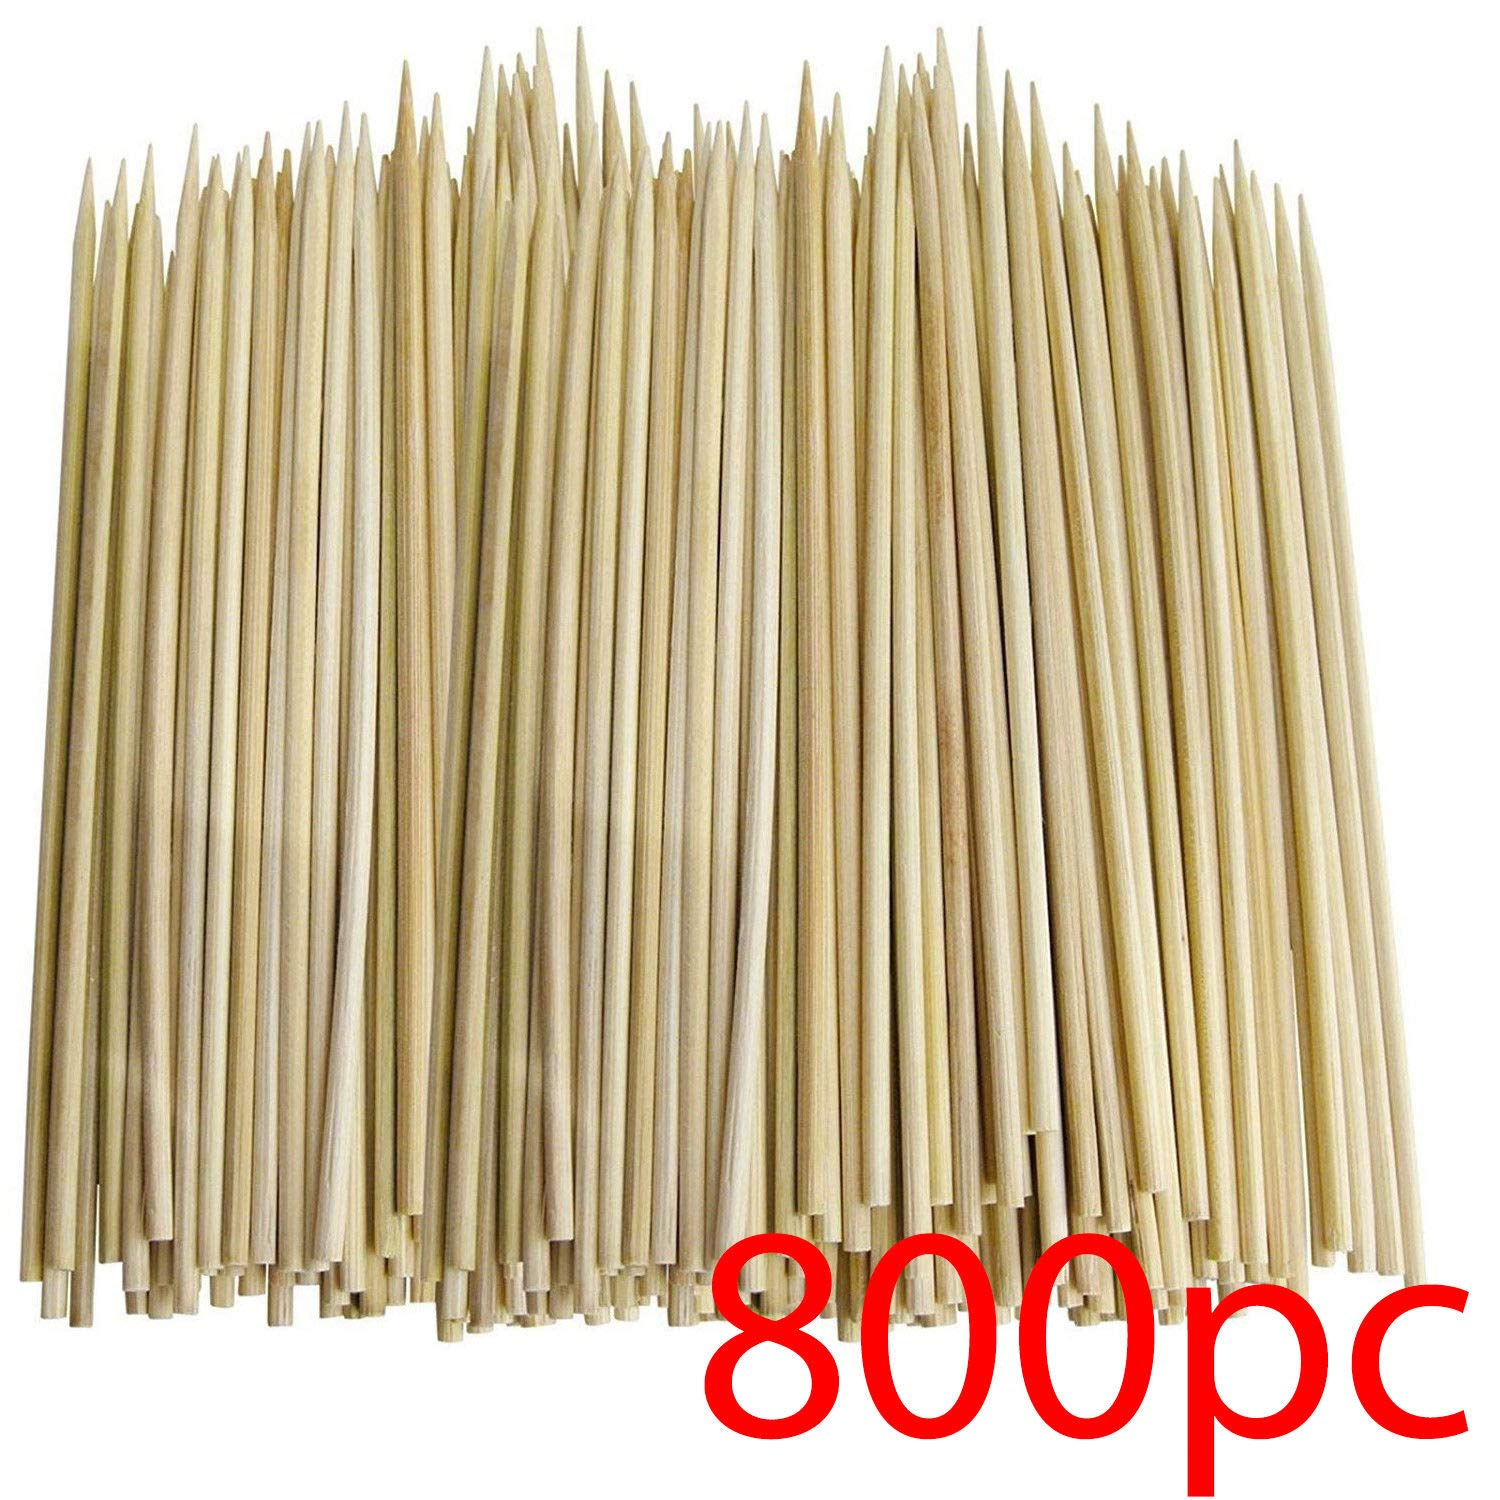 "800 Bamboo SKEWERS 20CM 8"" BBQ Kebab Wooden Wood Sticks Fruit Fondue Catering NT"